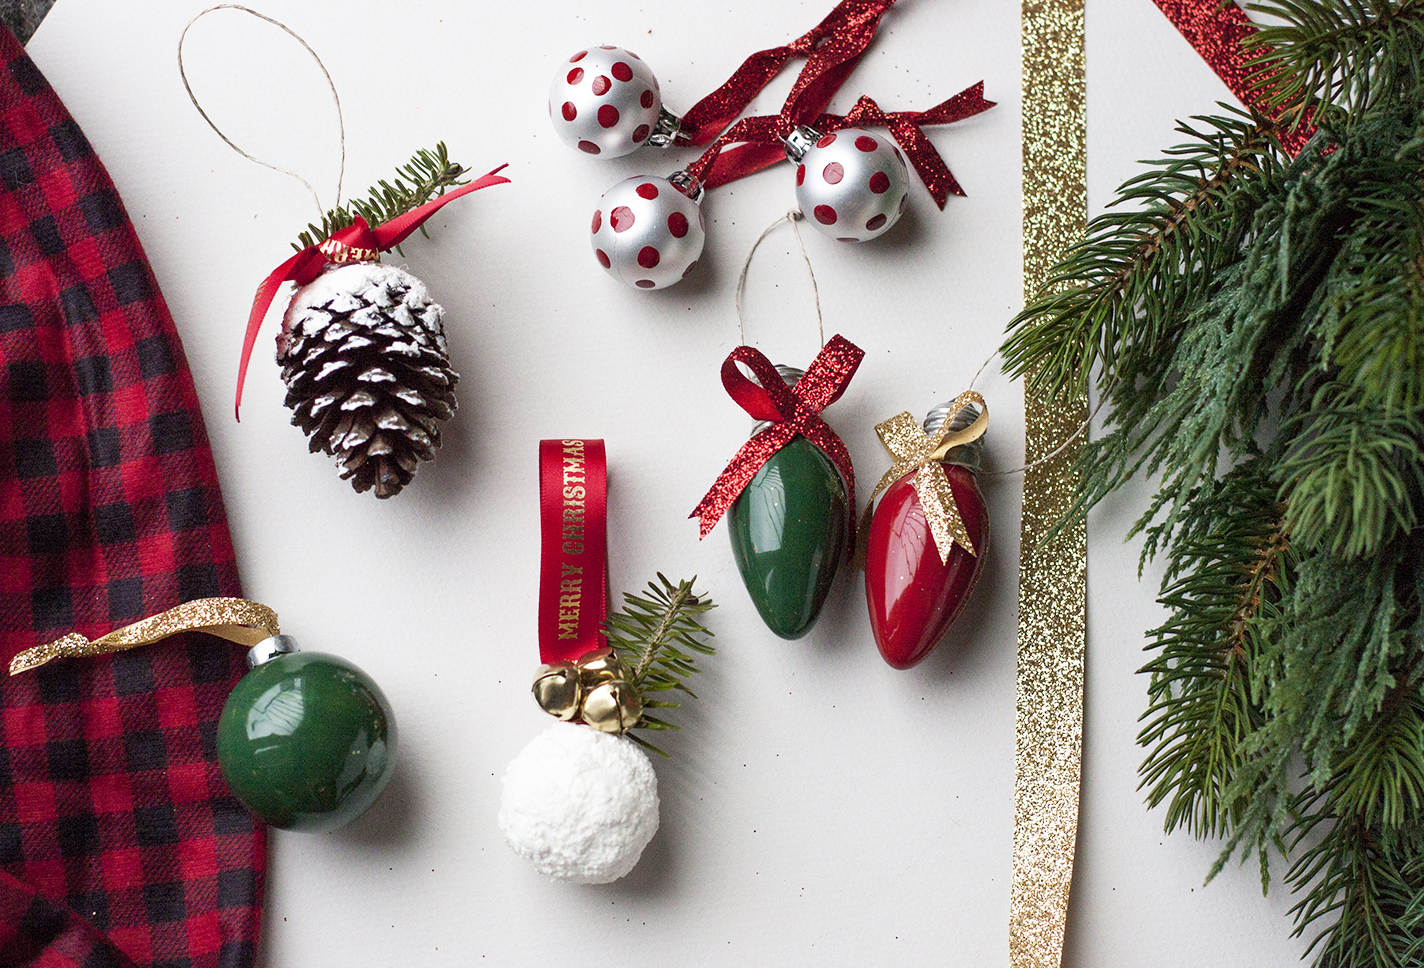 Diy Christmas Ornaments 5 Easy Diy Christmas Ornaments In One Afternoon